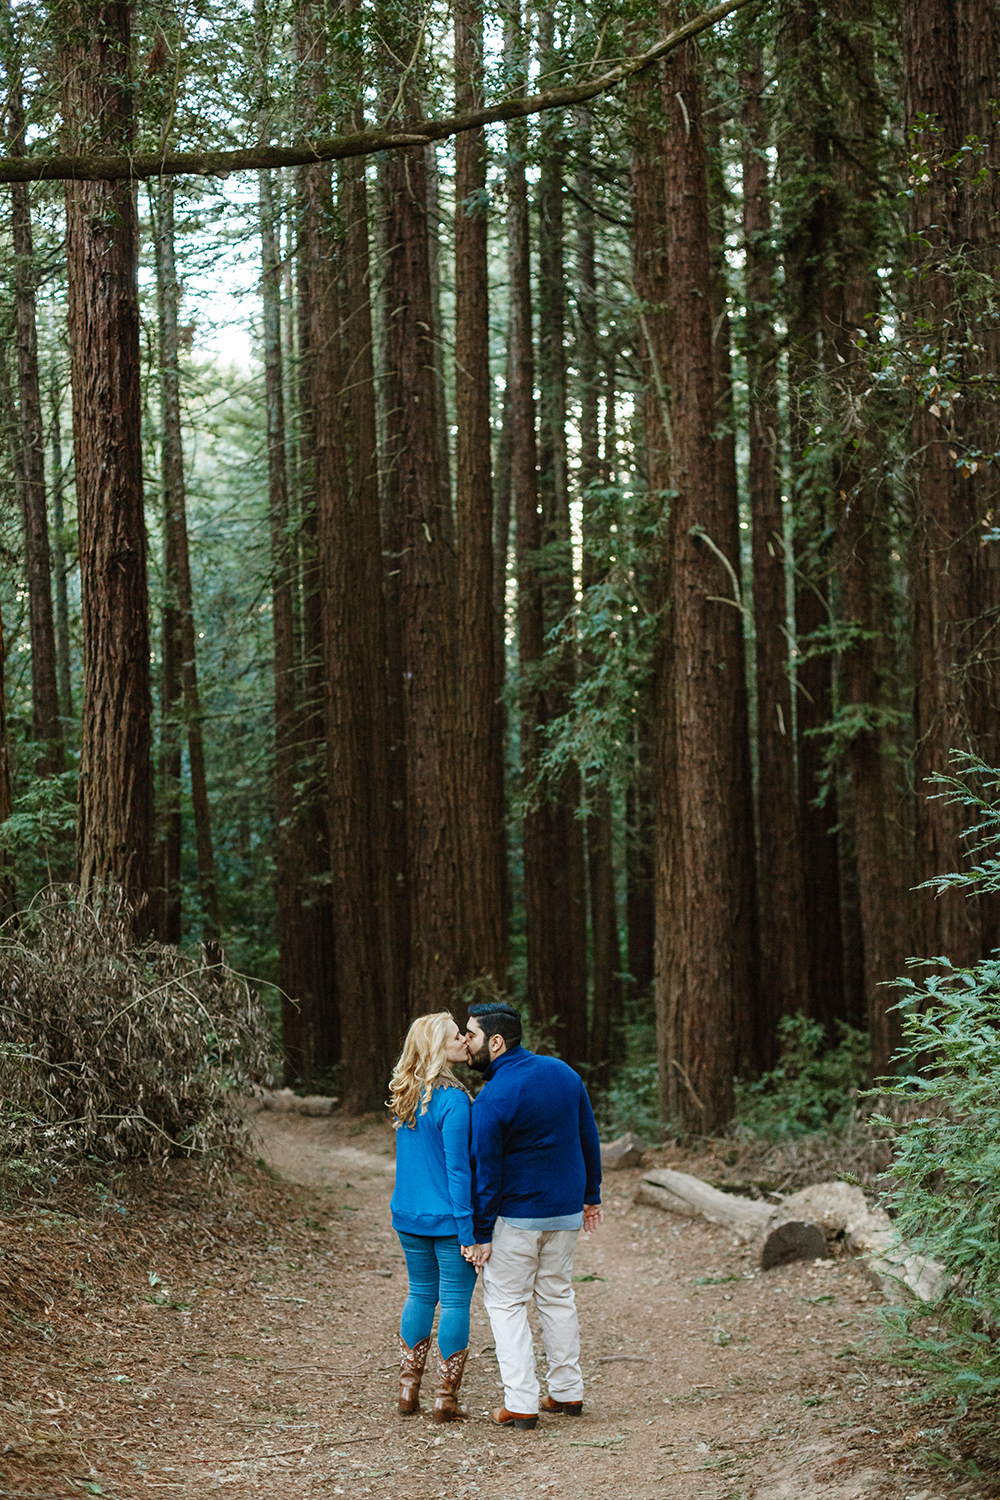 oakland-redwood-regional-engagement-session-james-stephanie-60.jpg